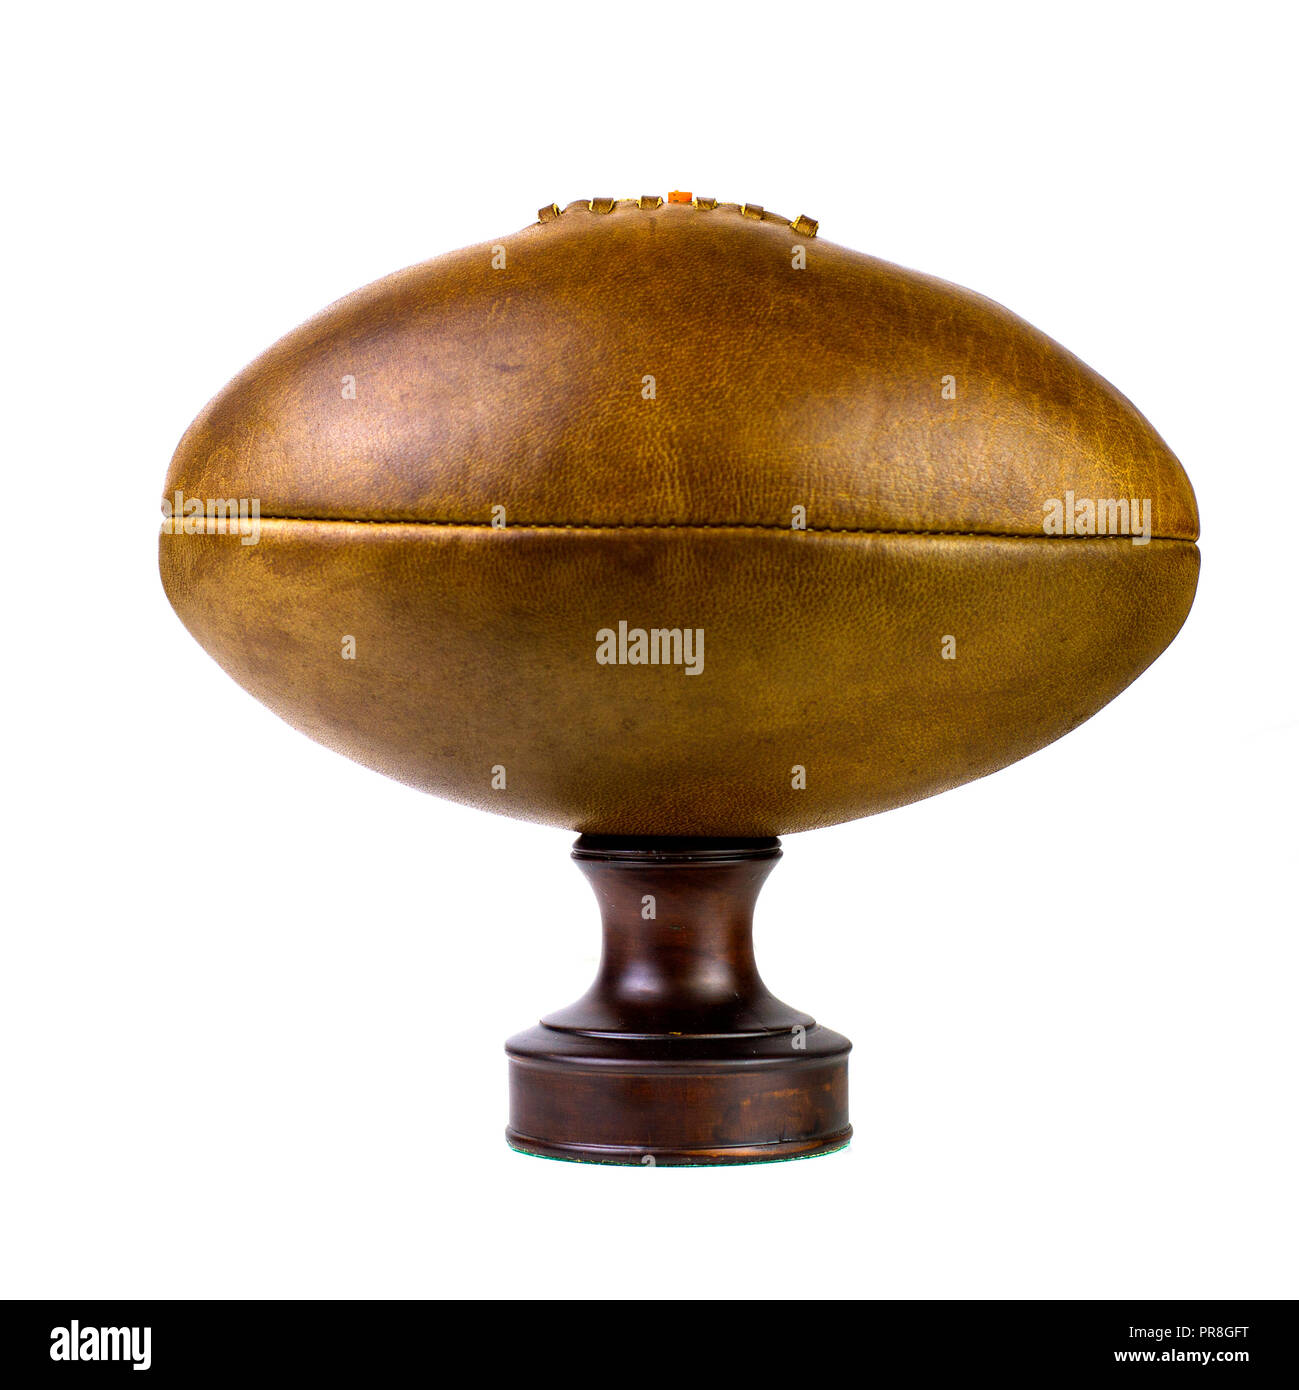 Vintage lace up leather rugby soccer ball Photo Stock